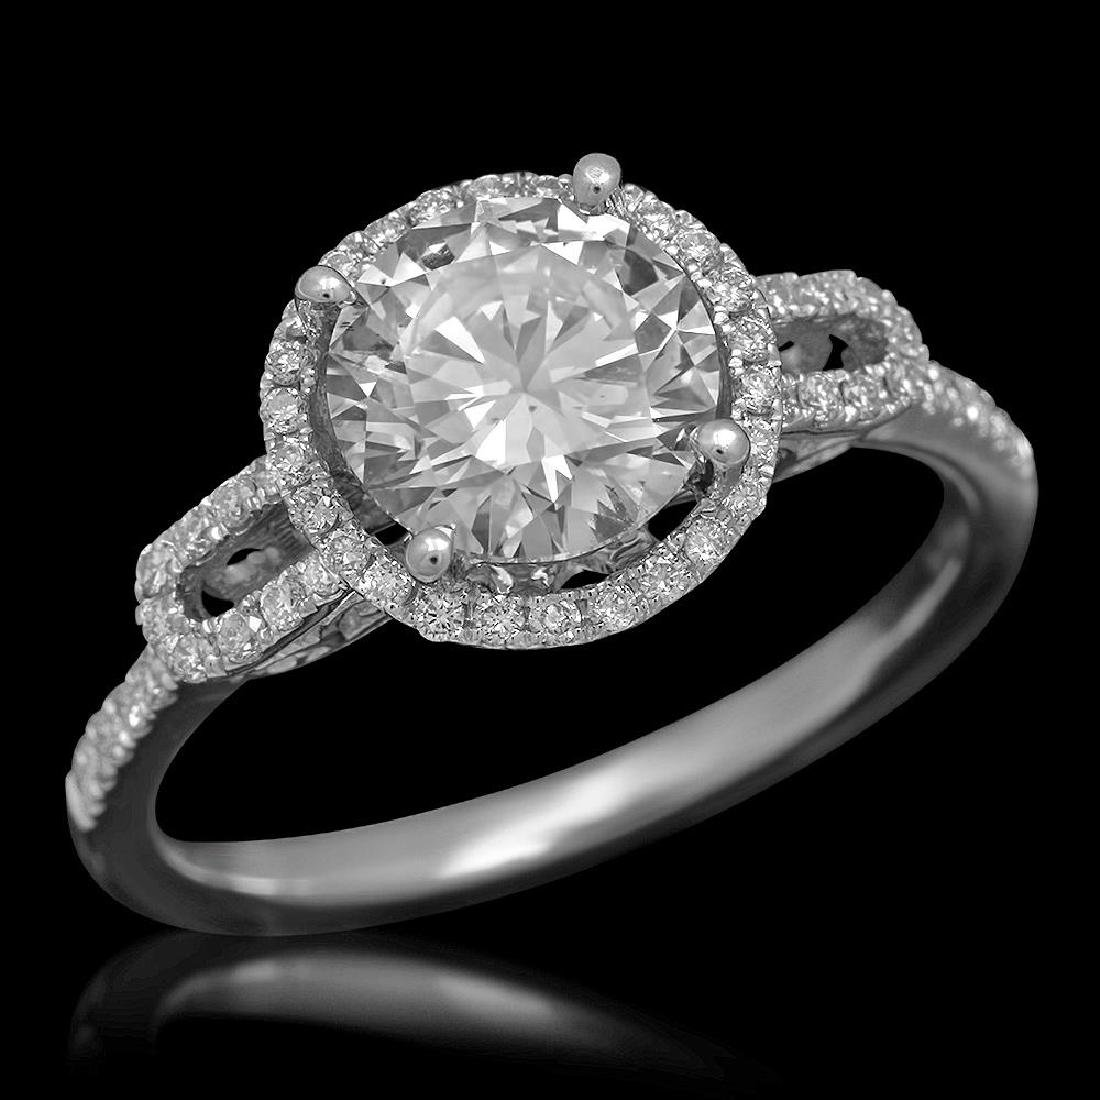 14K Gold 1.79ct Diamond Ring